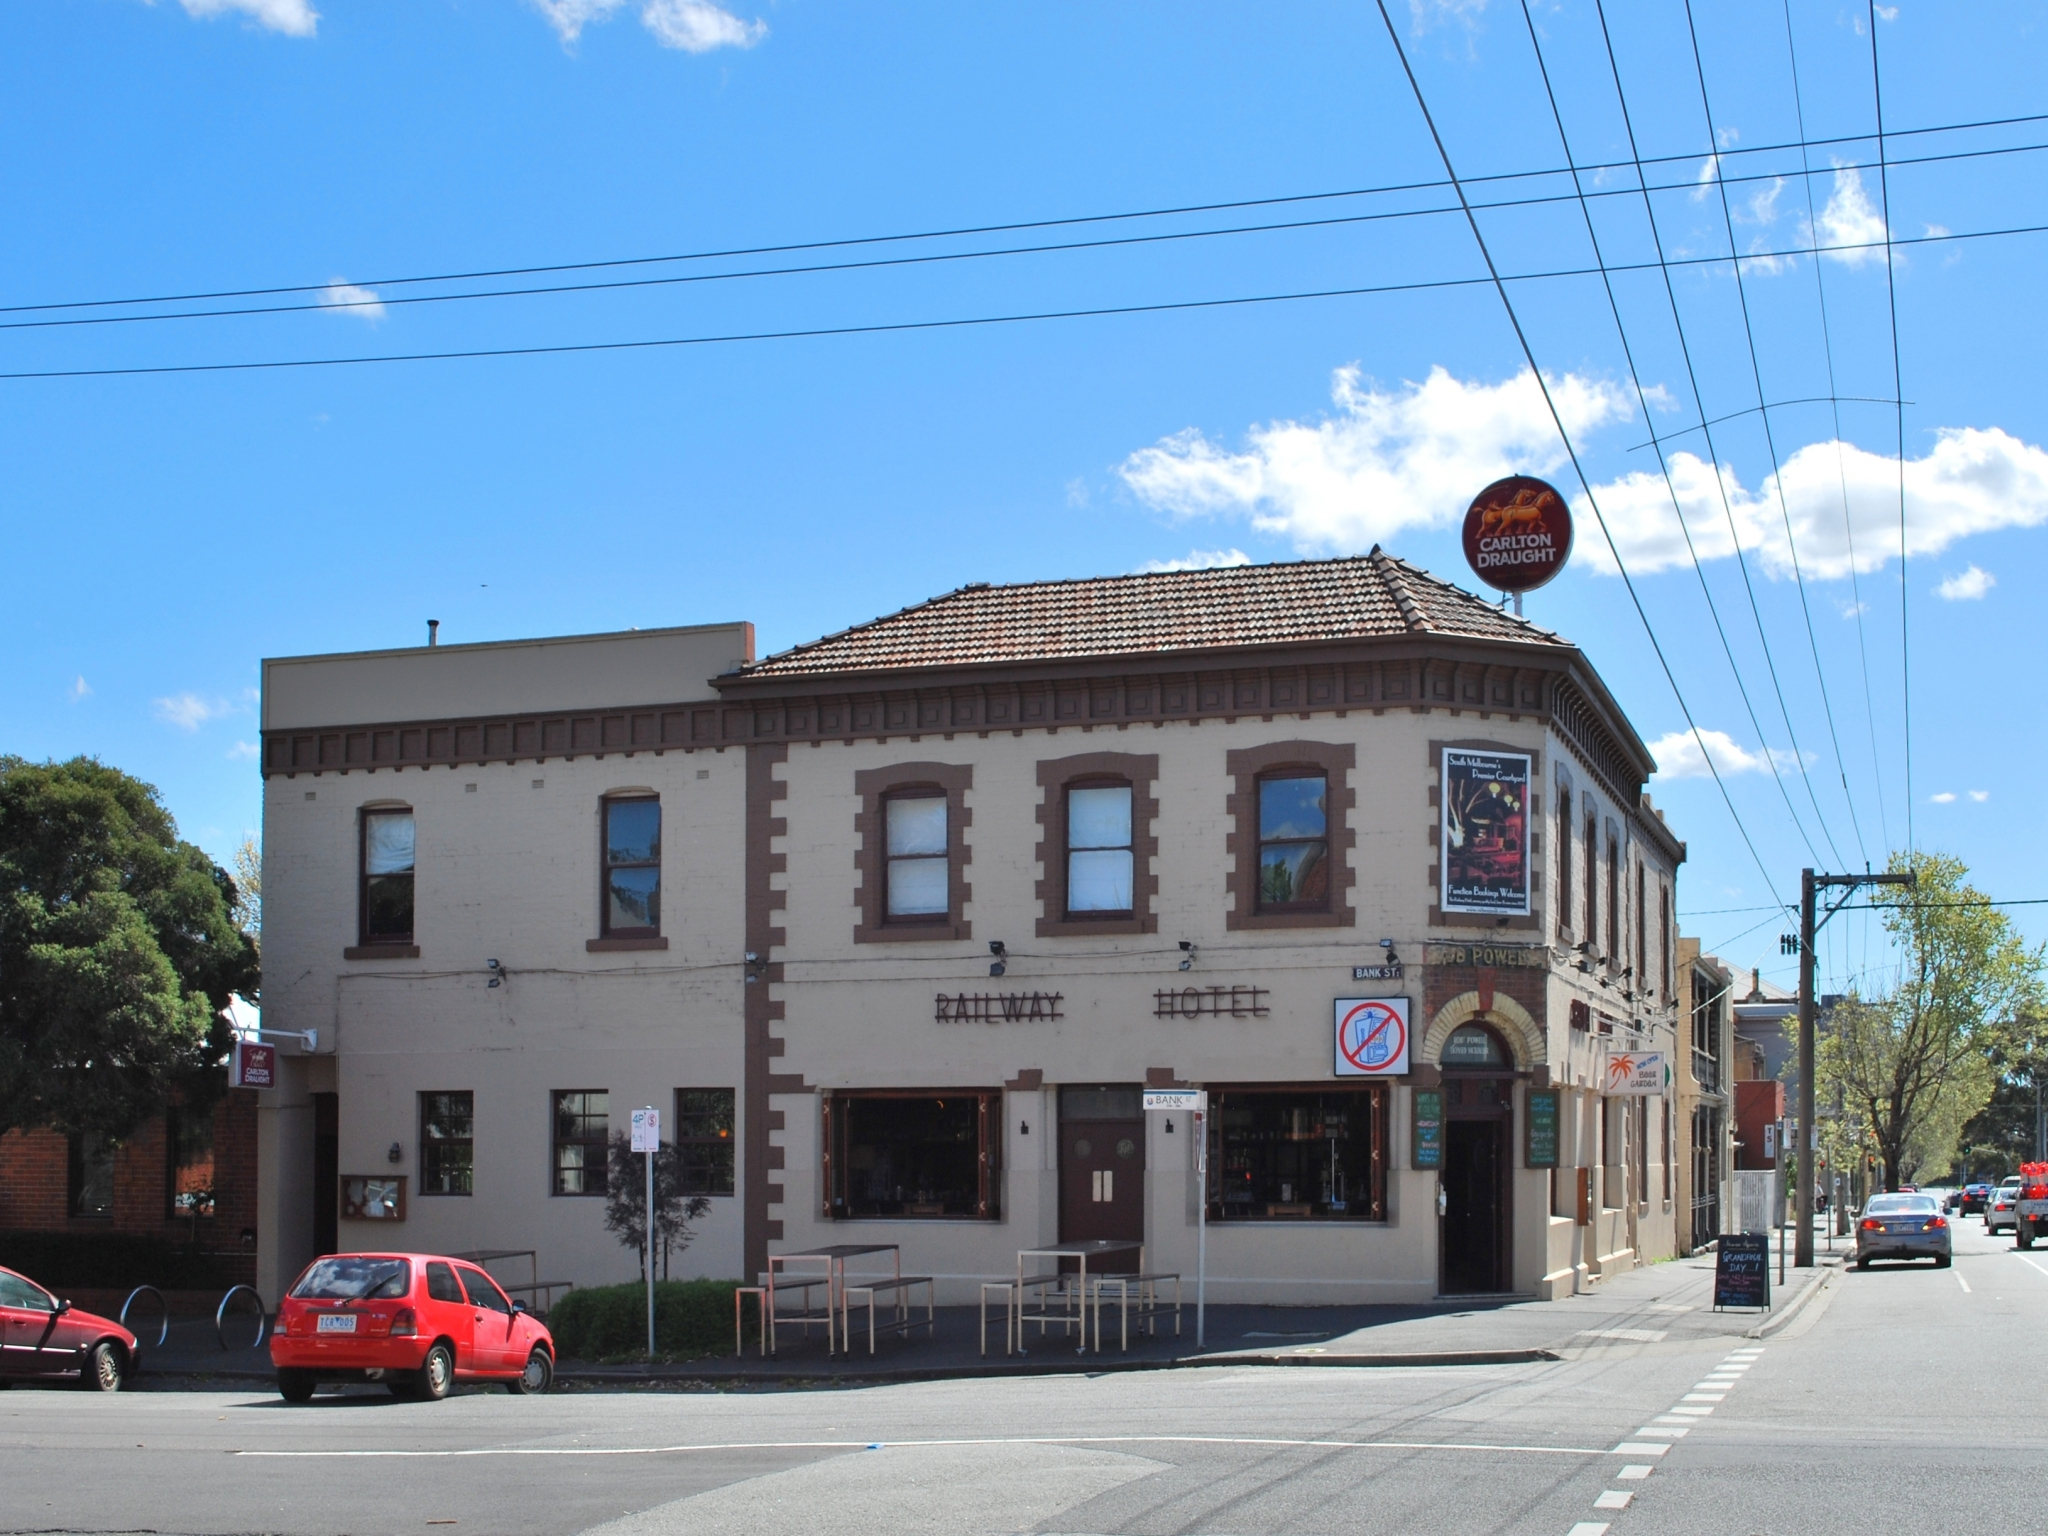 The Railway Hotel